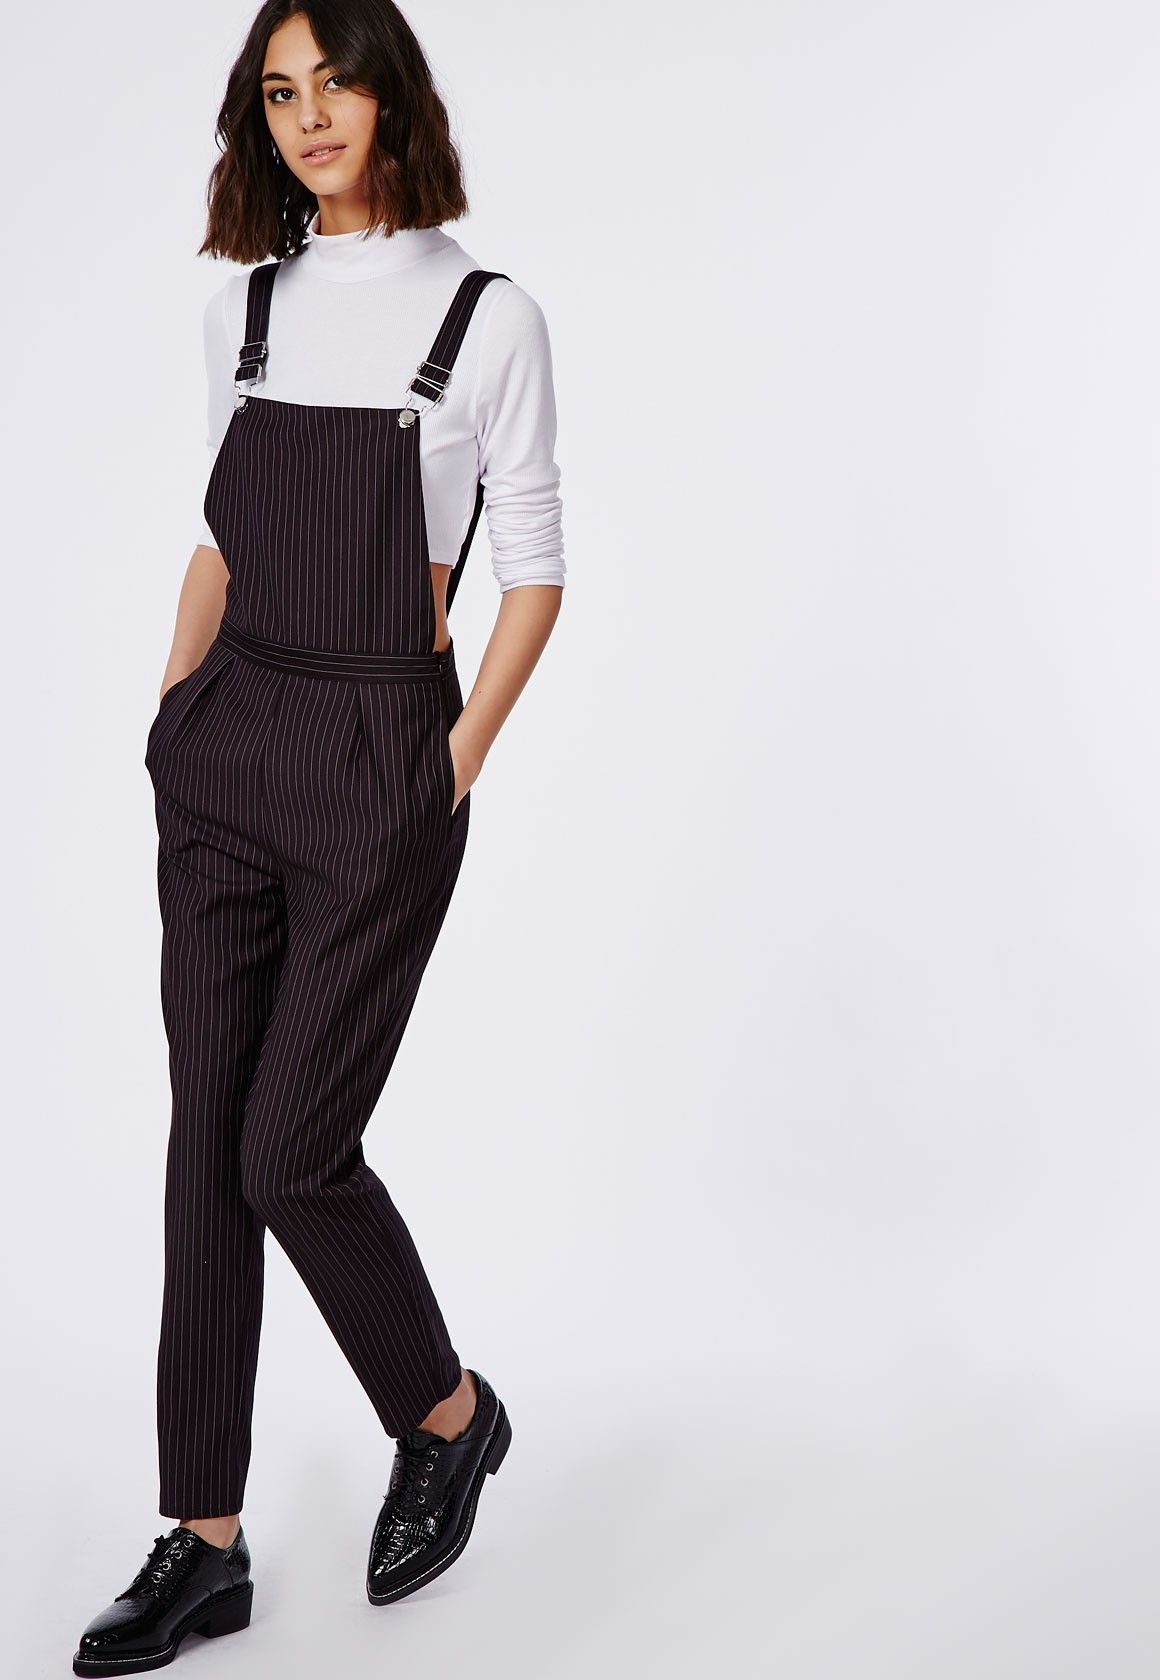 79898593c2f Tailored Pinstripe Overalls Black - Jumpsuits - Missguided ...